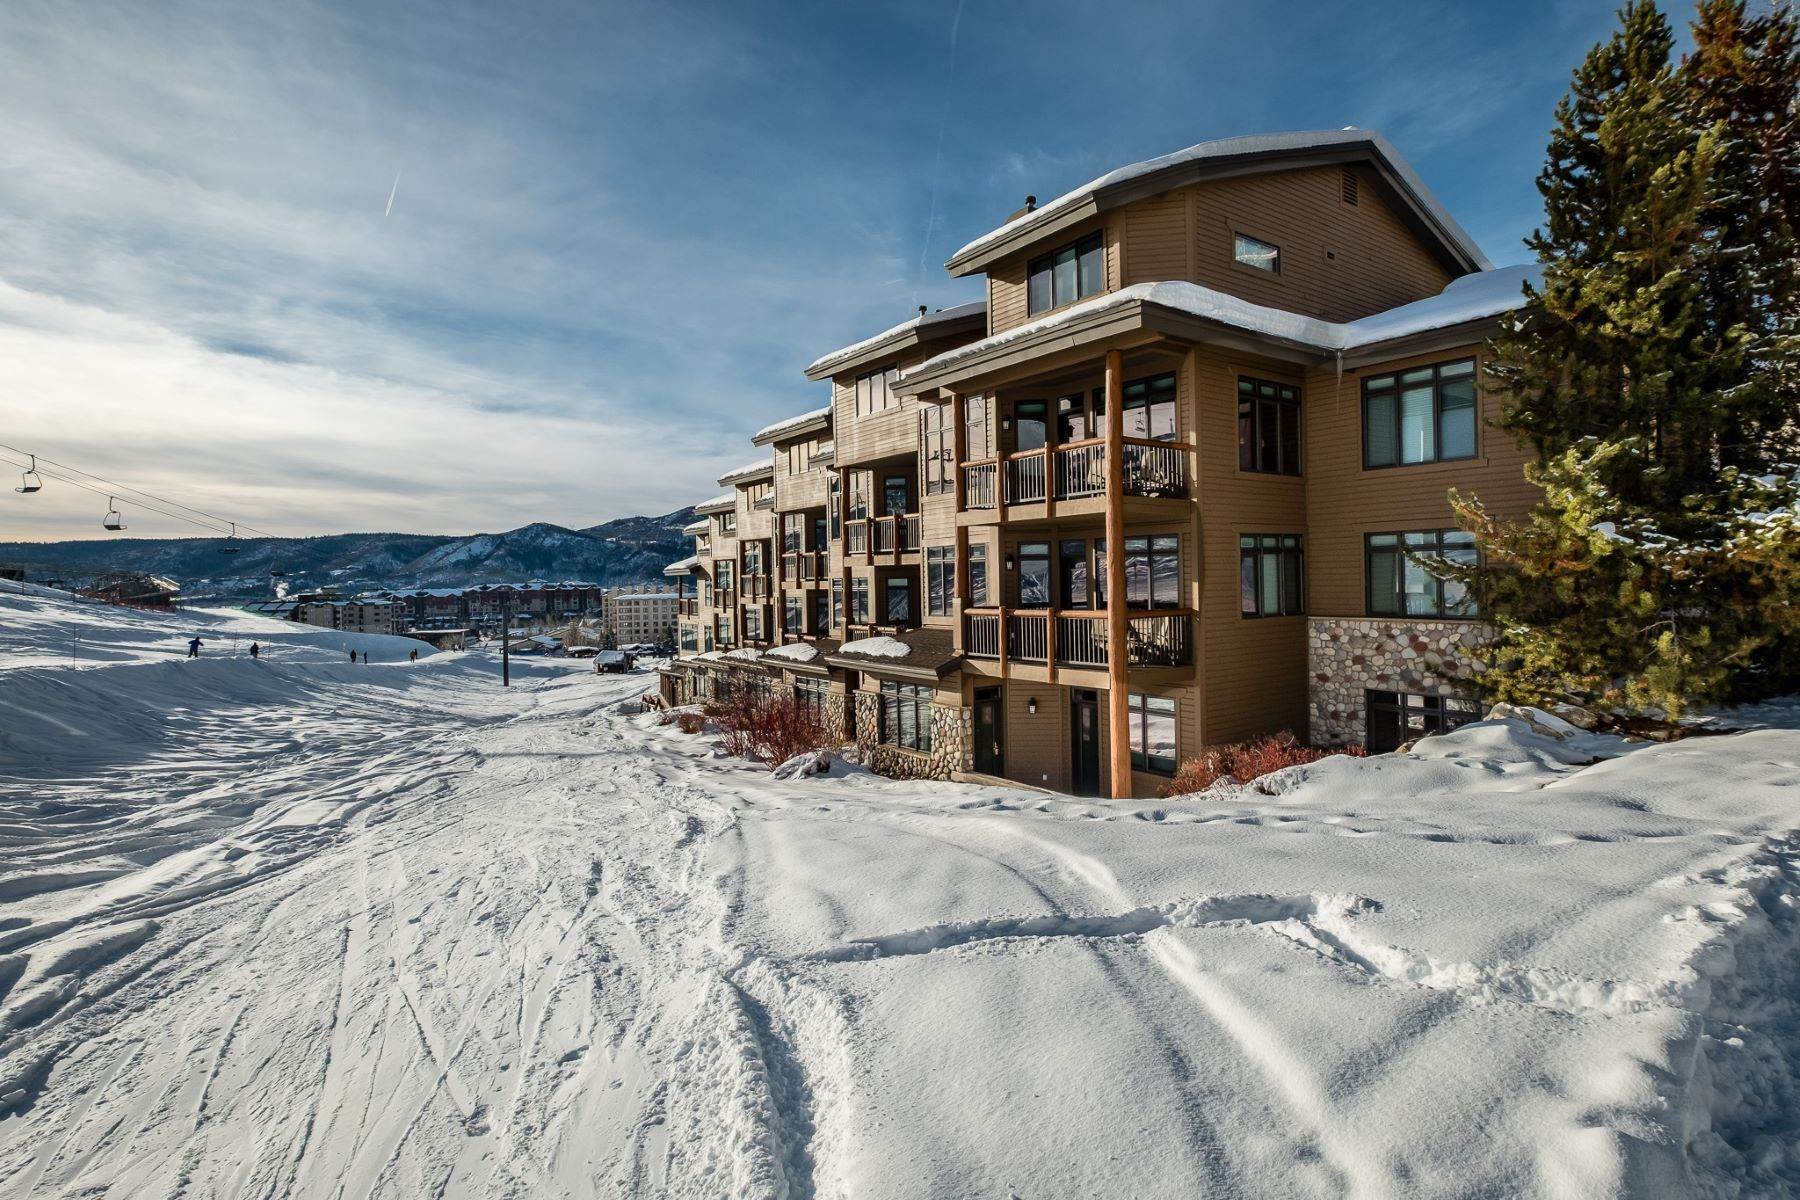 fractional ownership prop por un Venta en The Christie Club 2355 Ski Time Square Drive Unit #111-4-07 Steamboat Springs, Colorado 80487 Estados Unidos